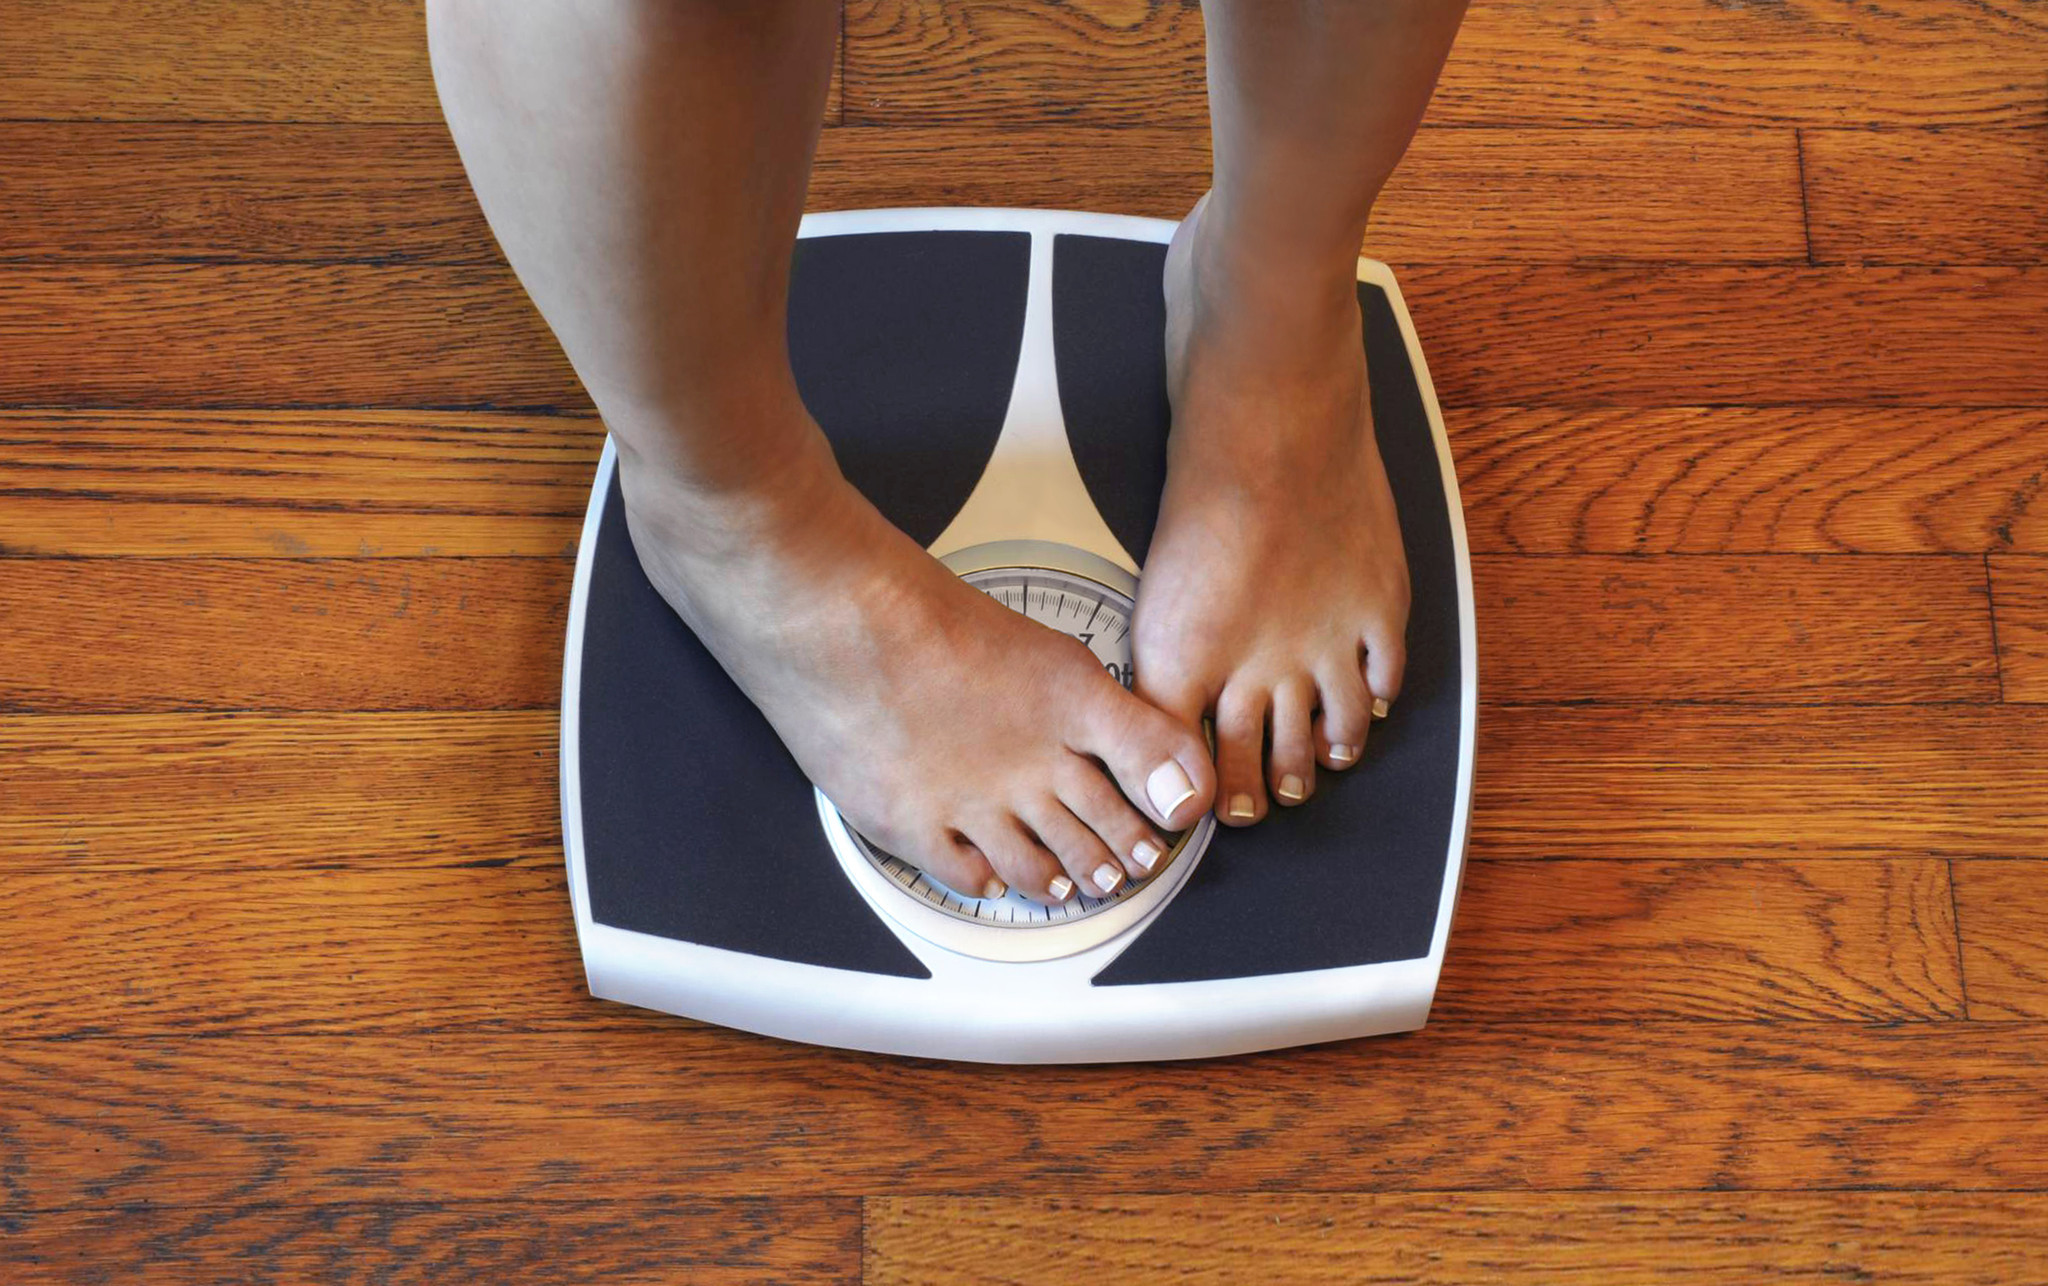 It's gotten harder to lose weight and not for the reasons you think